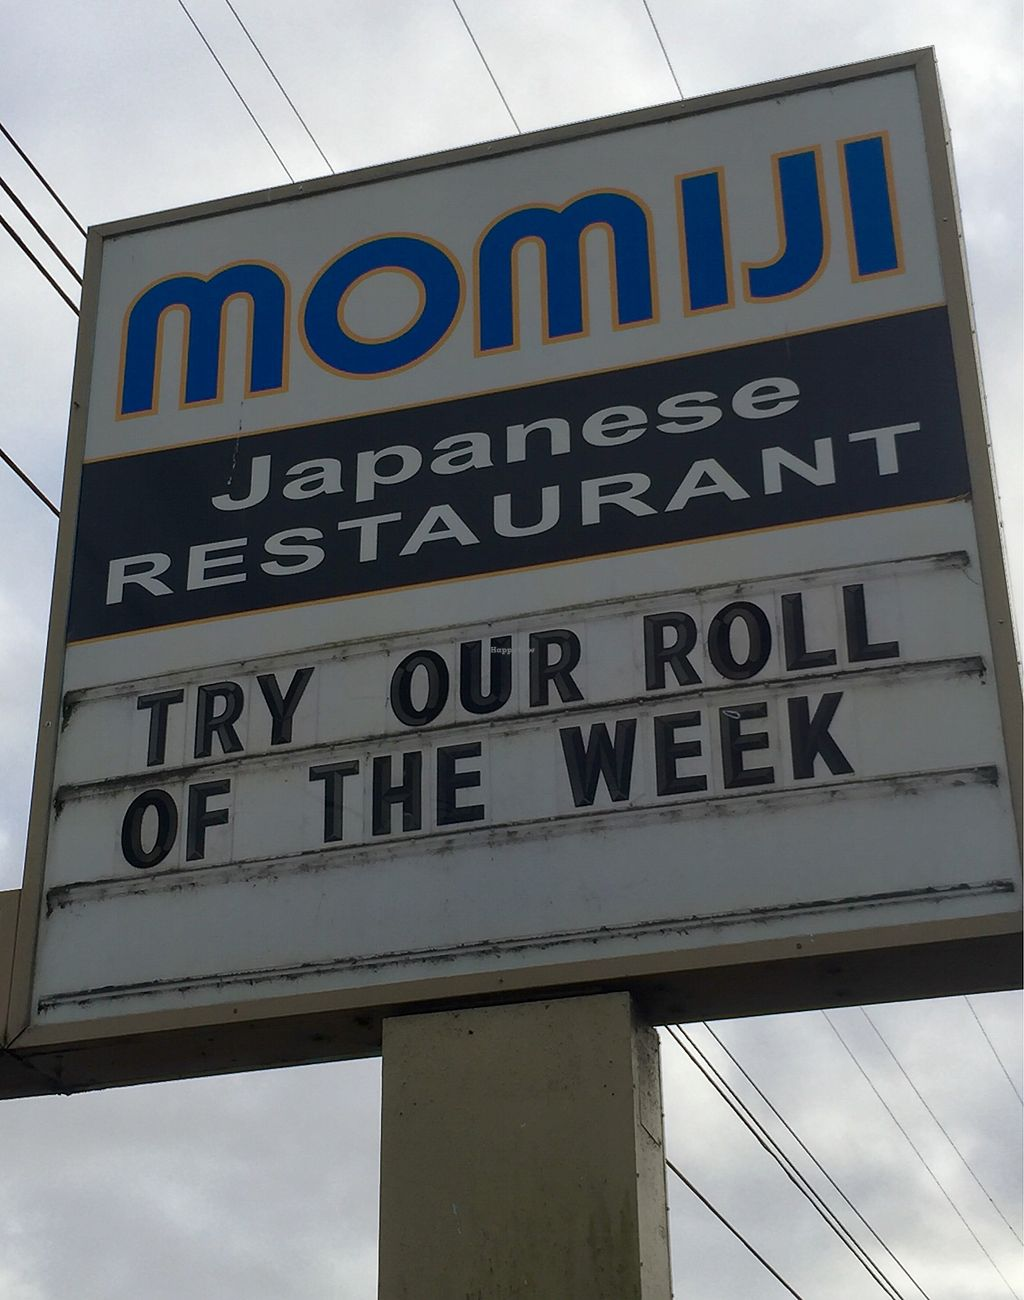 """Photo of Momiji  by <a href=""""/members/profile/happycowgirl"""">happycowgirl</a> <br/>Look for this sign off Highway 101 <br/> December 27, 2017  - <a href='/contact/abuse/image/70314/339739'>Report</a>"""